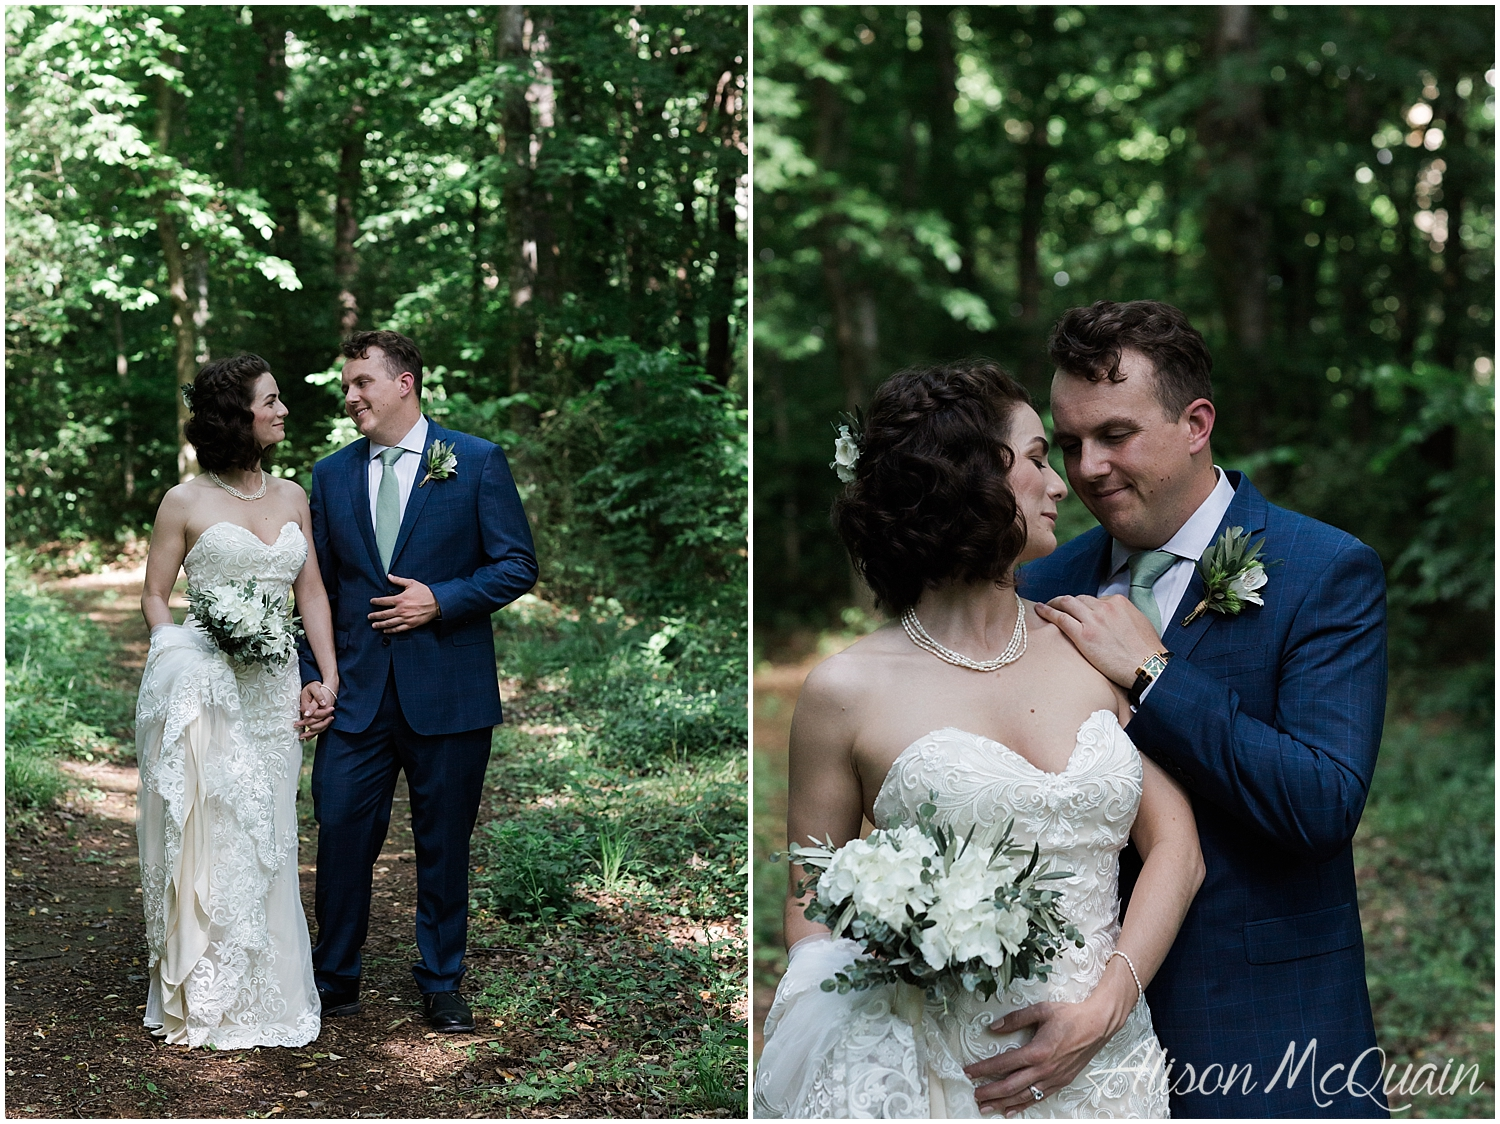 2018-05-23_0007LandC_wedding_dancingbearlodge_townsend_tn_amp.jpg